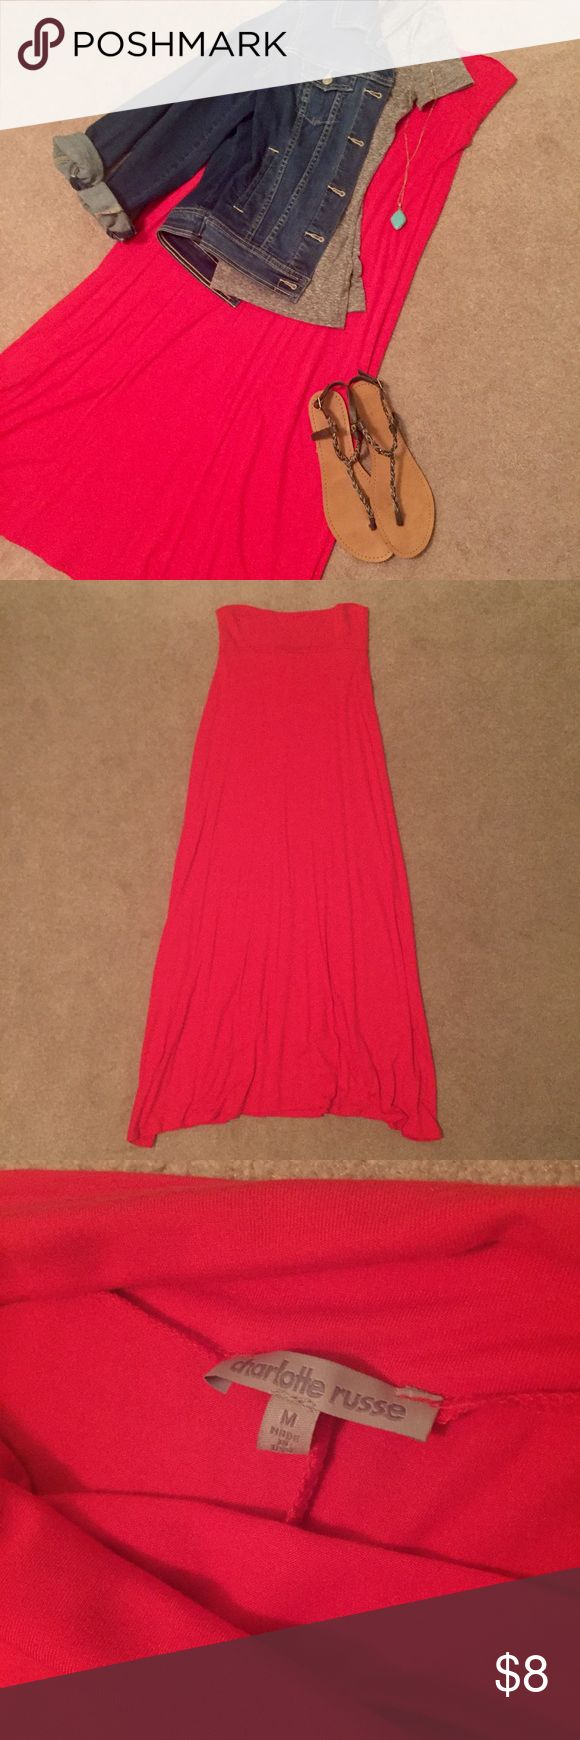 Coral Maxi Skirt - Size Medium Charlotte Russe Coral Maxi Skirt - size small. In great condition, worn only once! Charlotte Russe Skirts Maxi